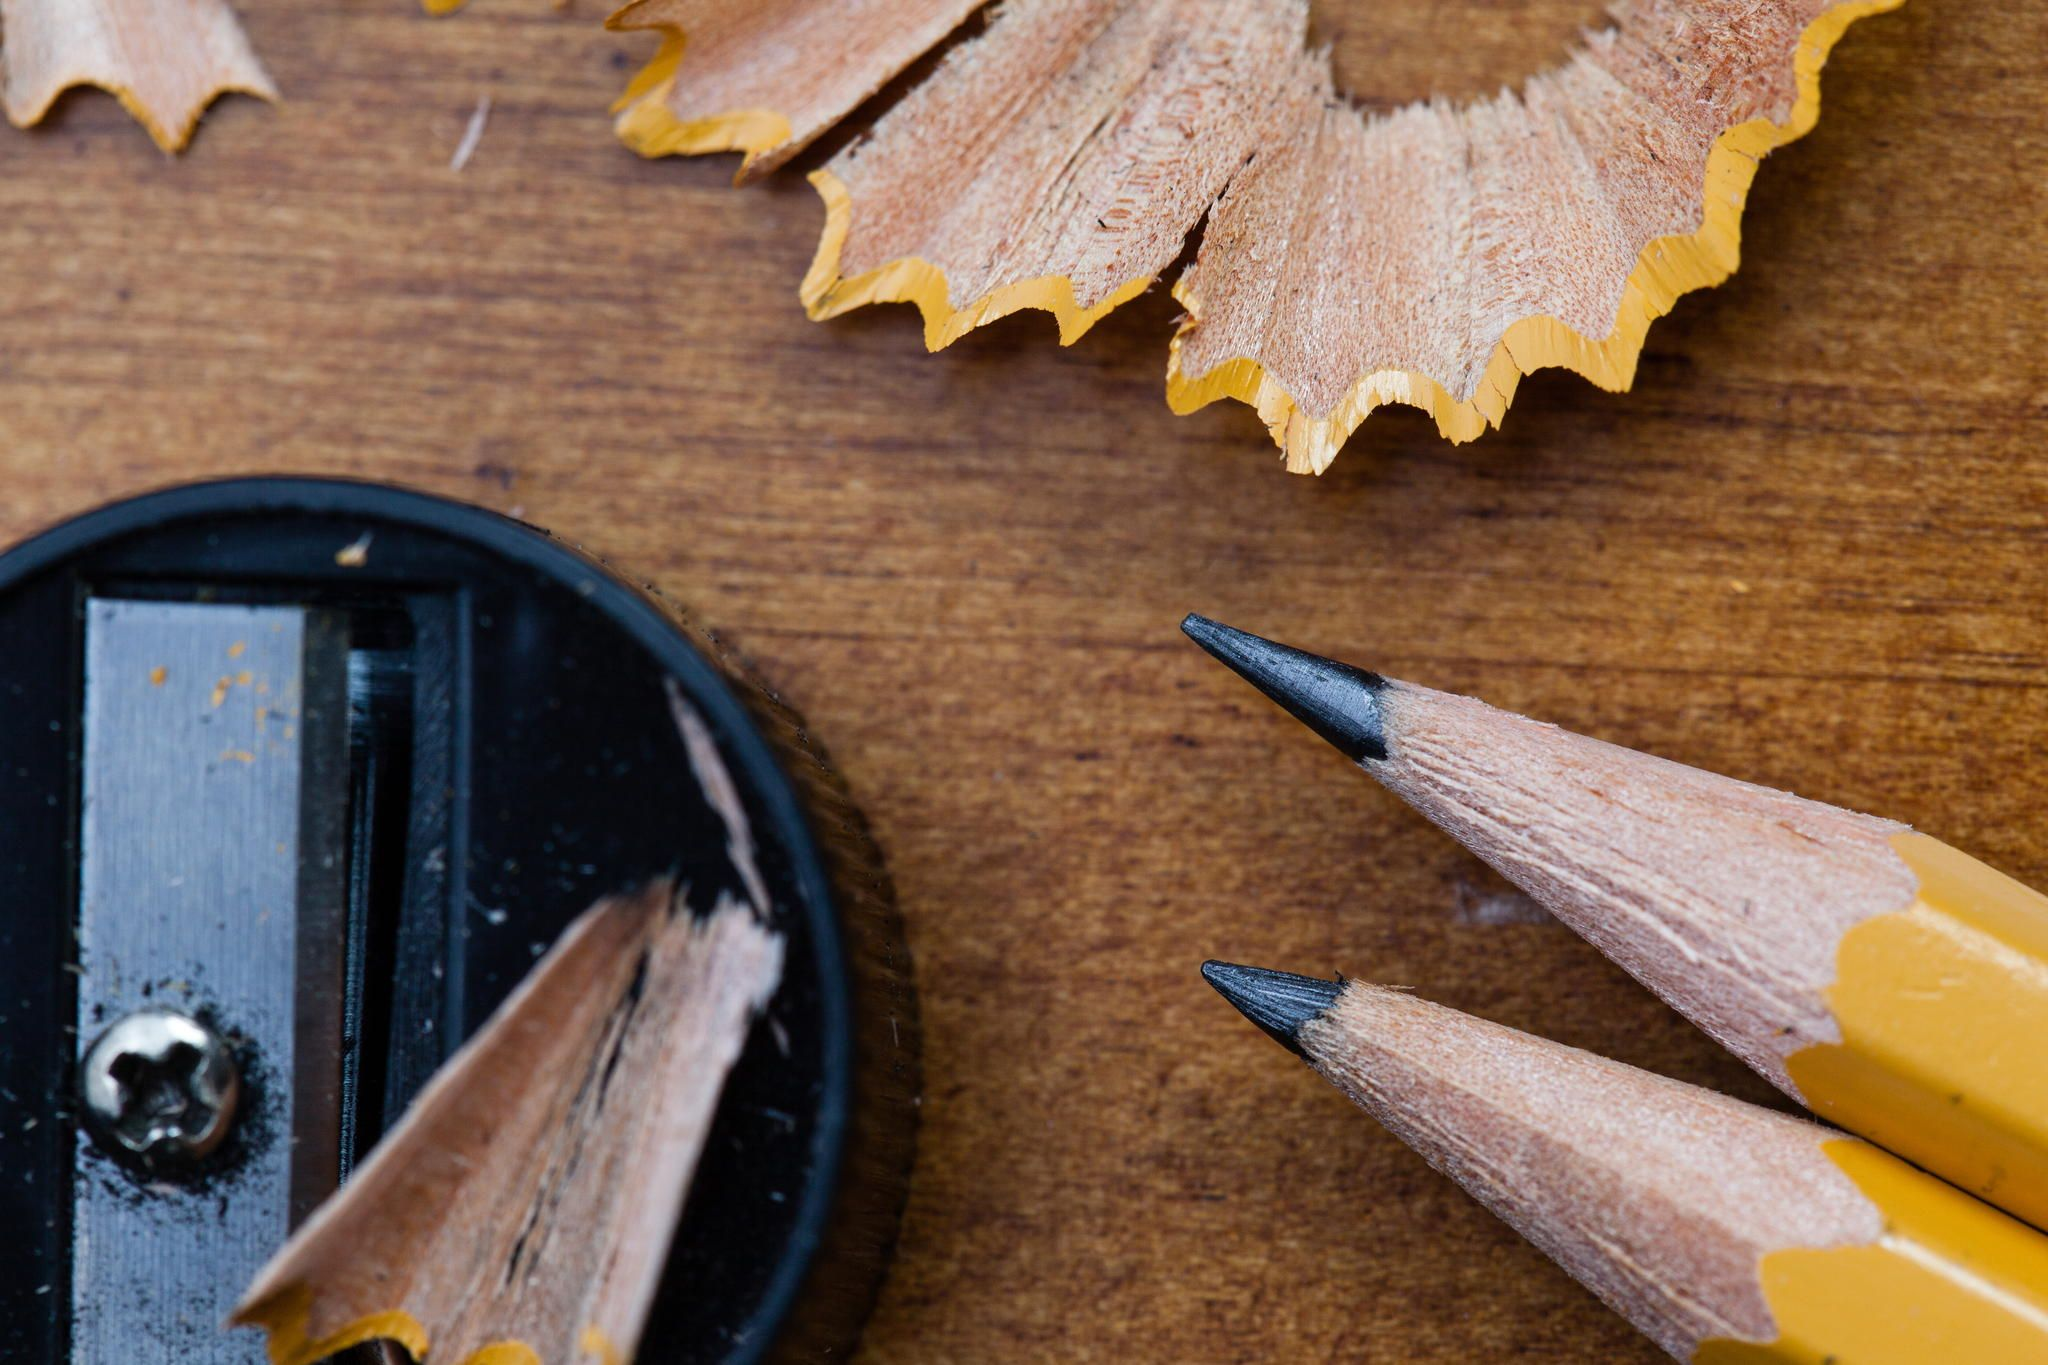 Macro Image Of Pencils Sharpener And Shavings Images Of Pencil Pencil Learning Styles